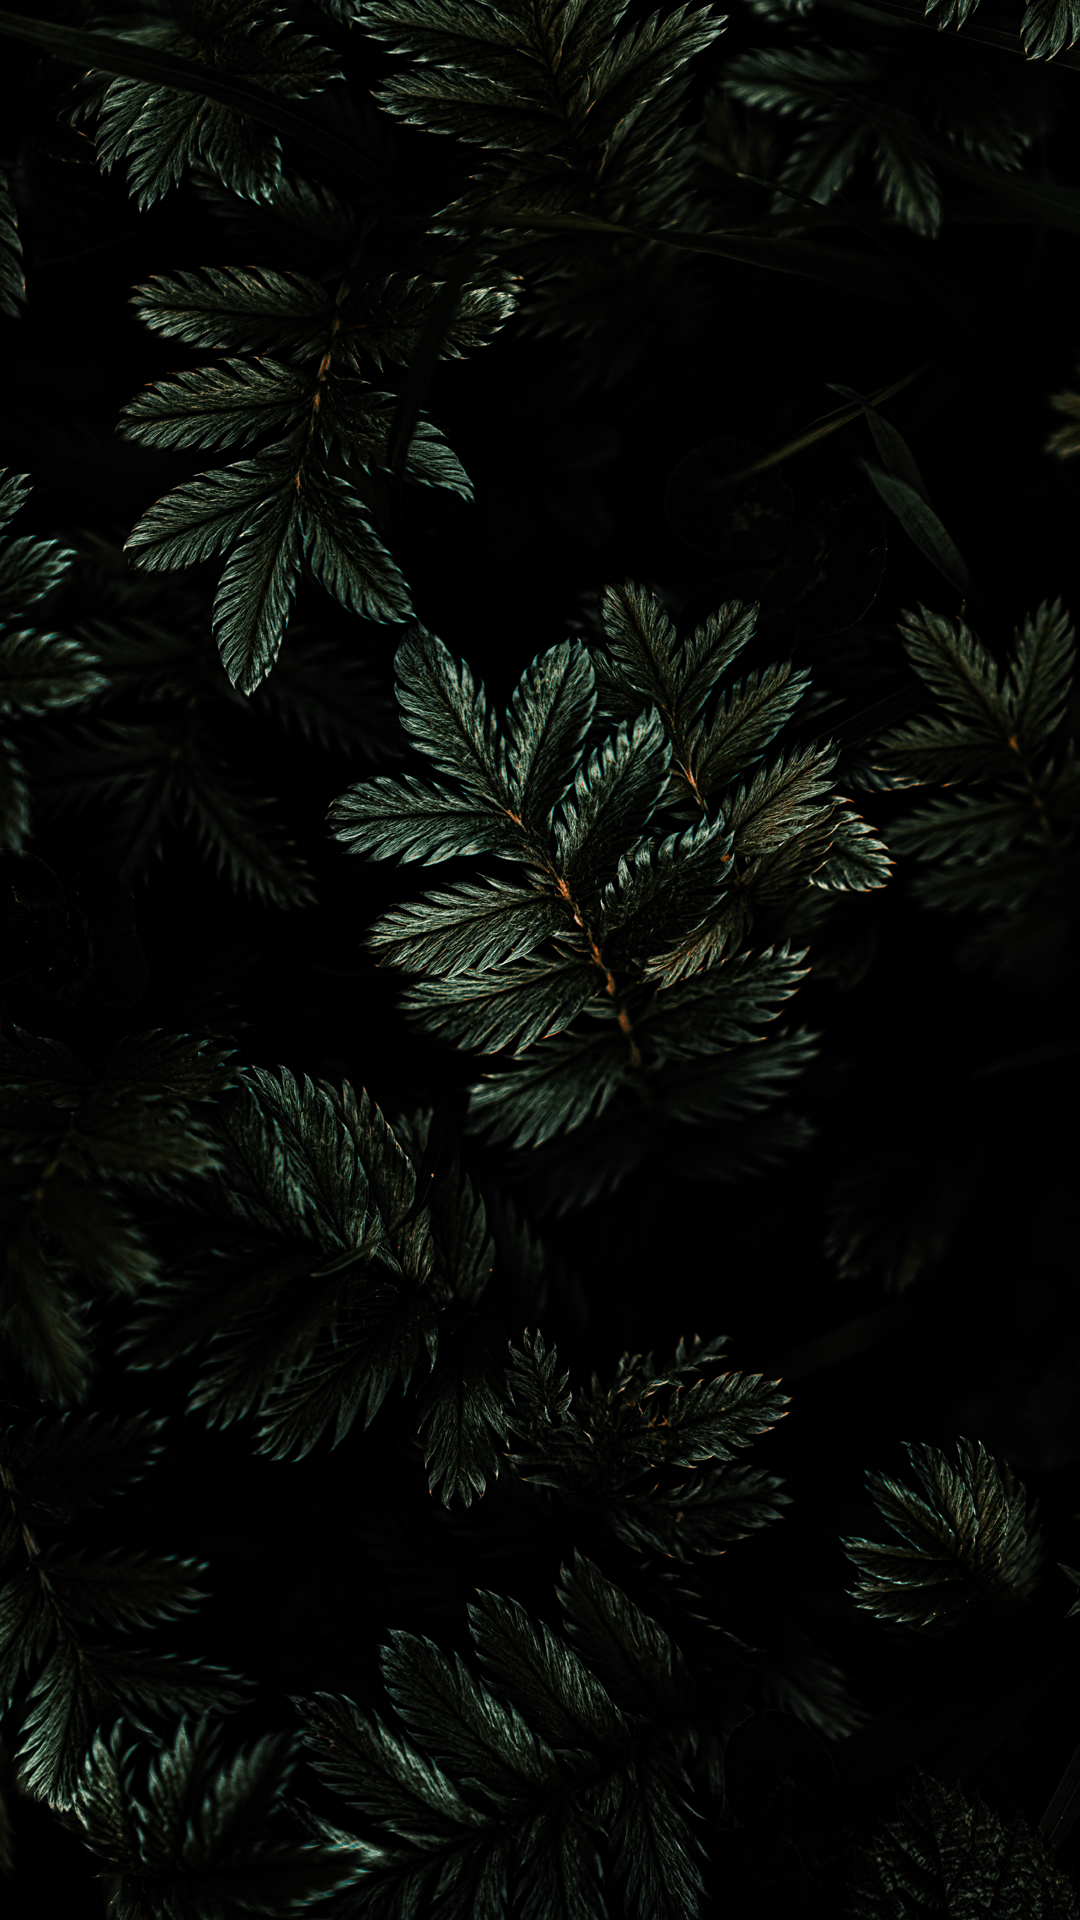 dark botanicla wallpaper